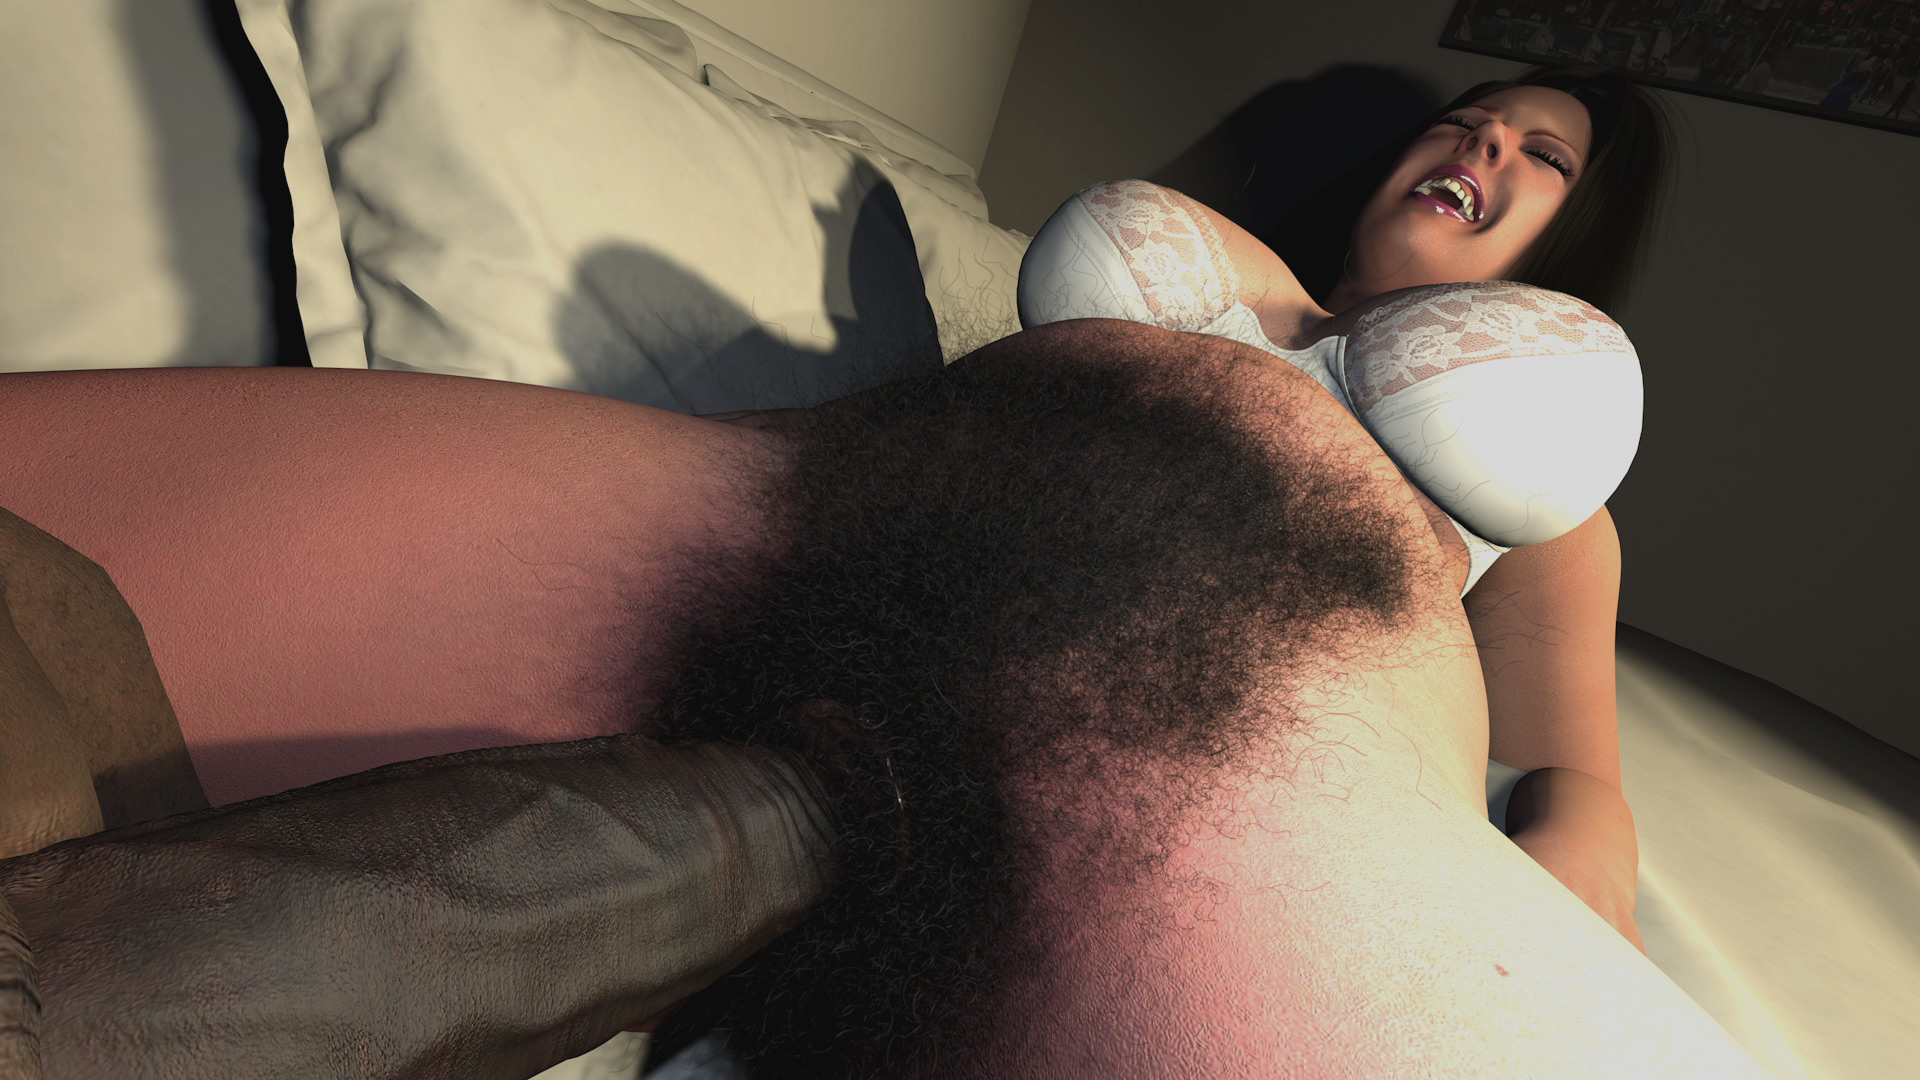 Pussy super hairy Hairy Ladies